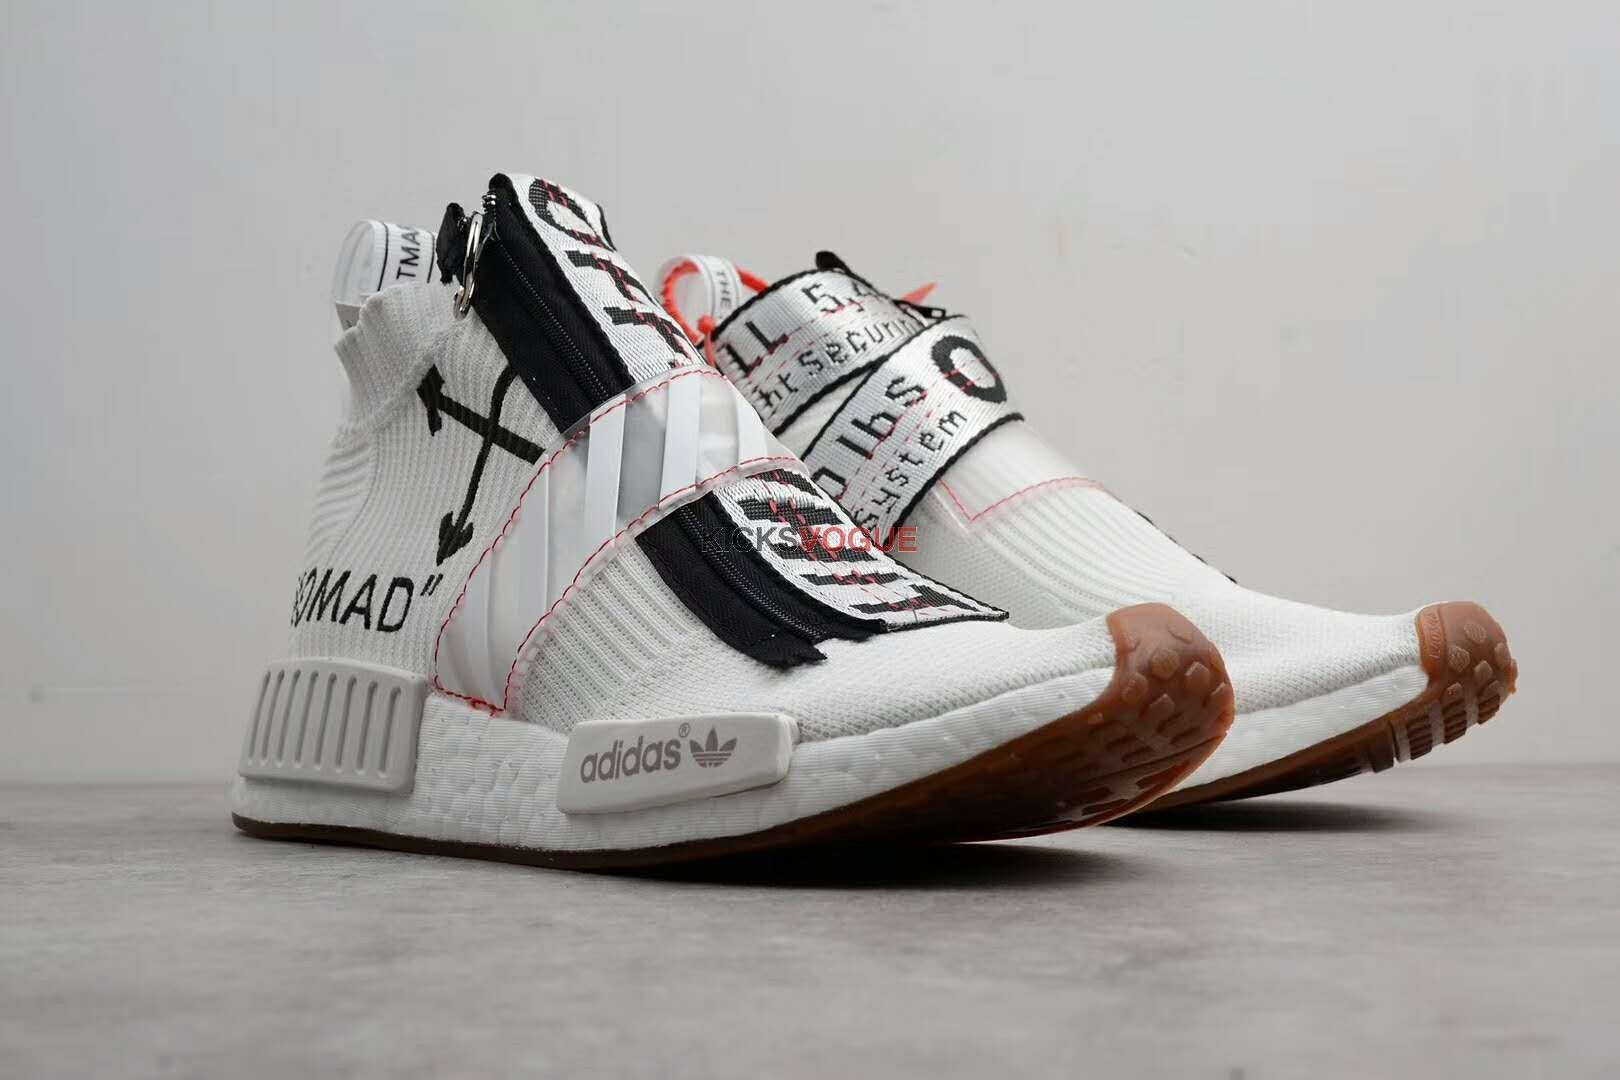 OFF-WHITE x adidas Originals NMD City Sock Customs Adidas Sneakers, Adidas  Nmd,